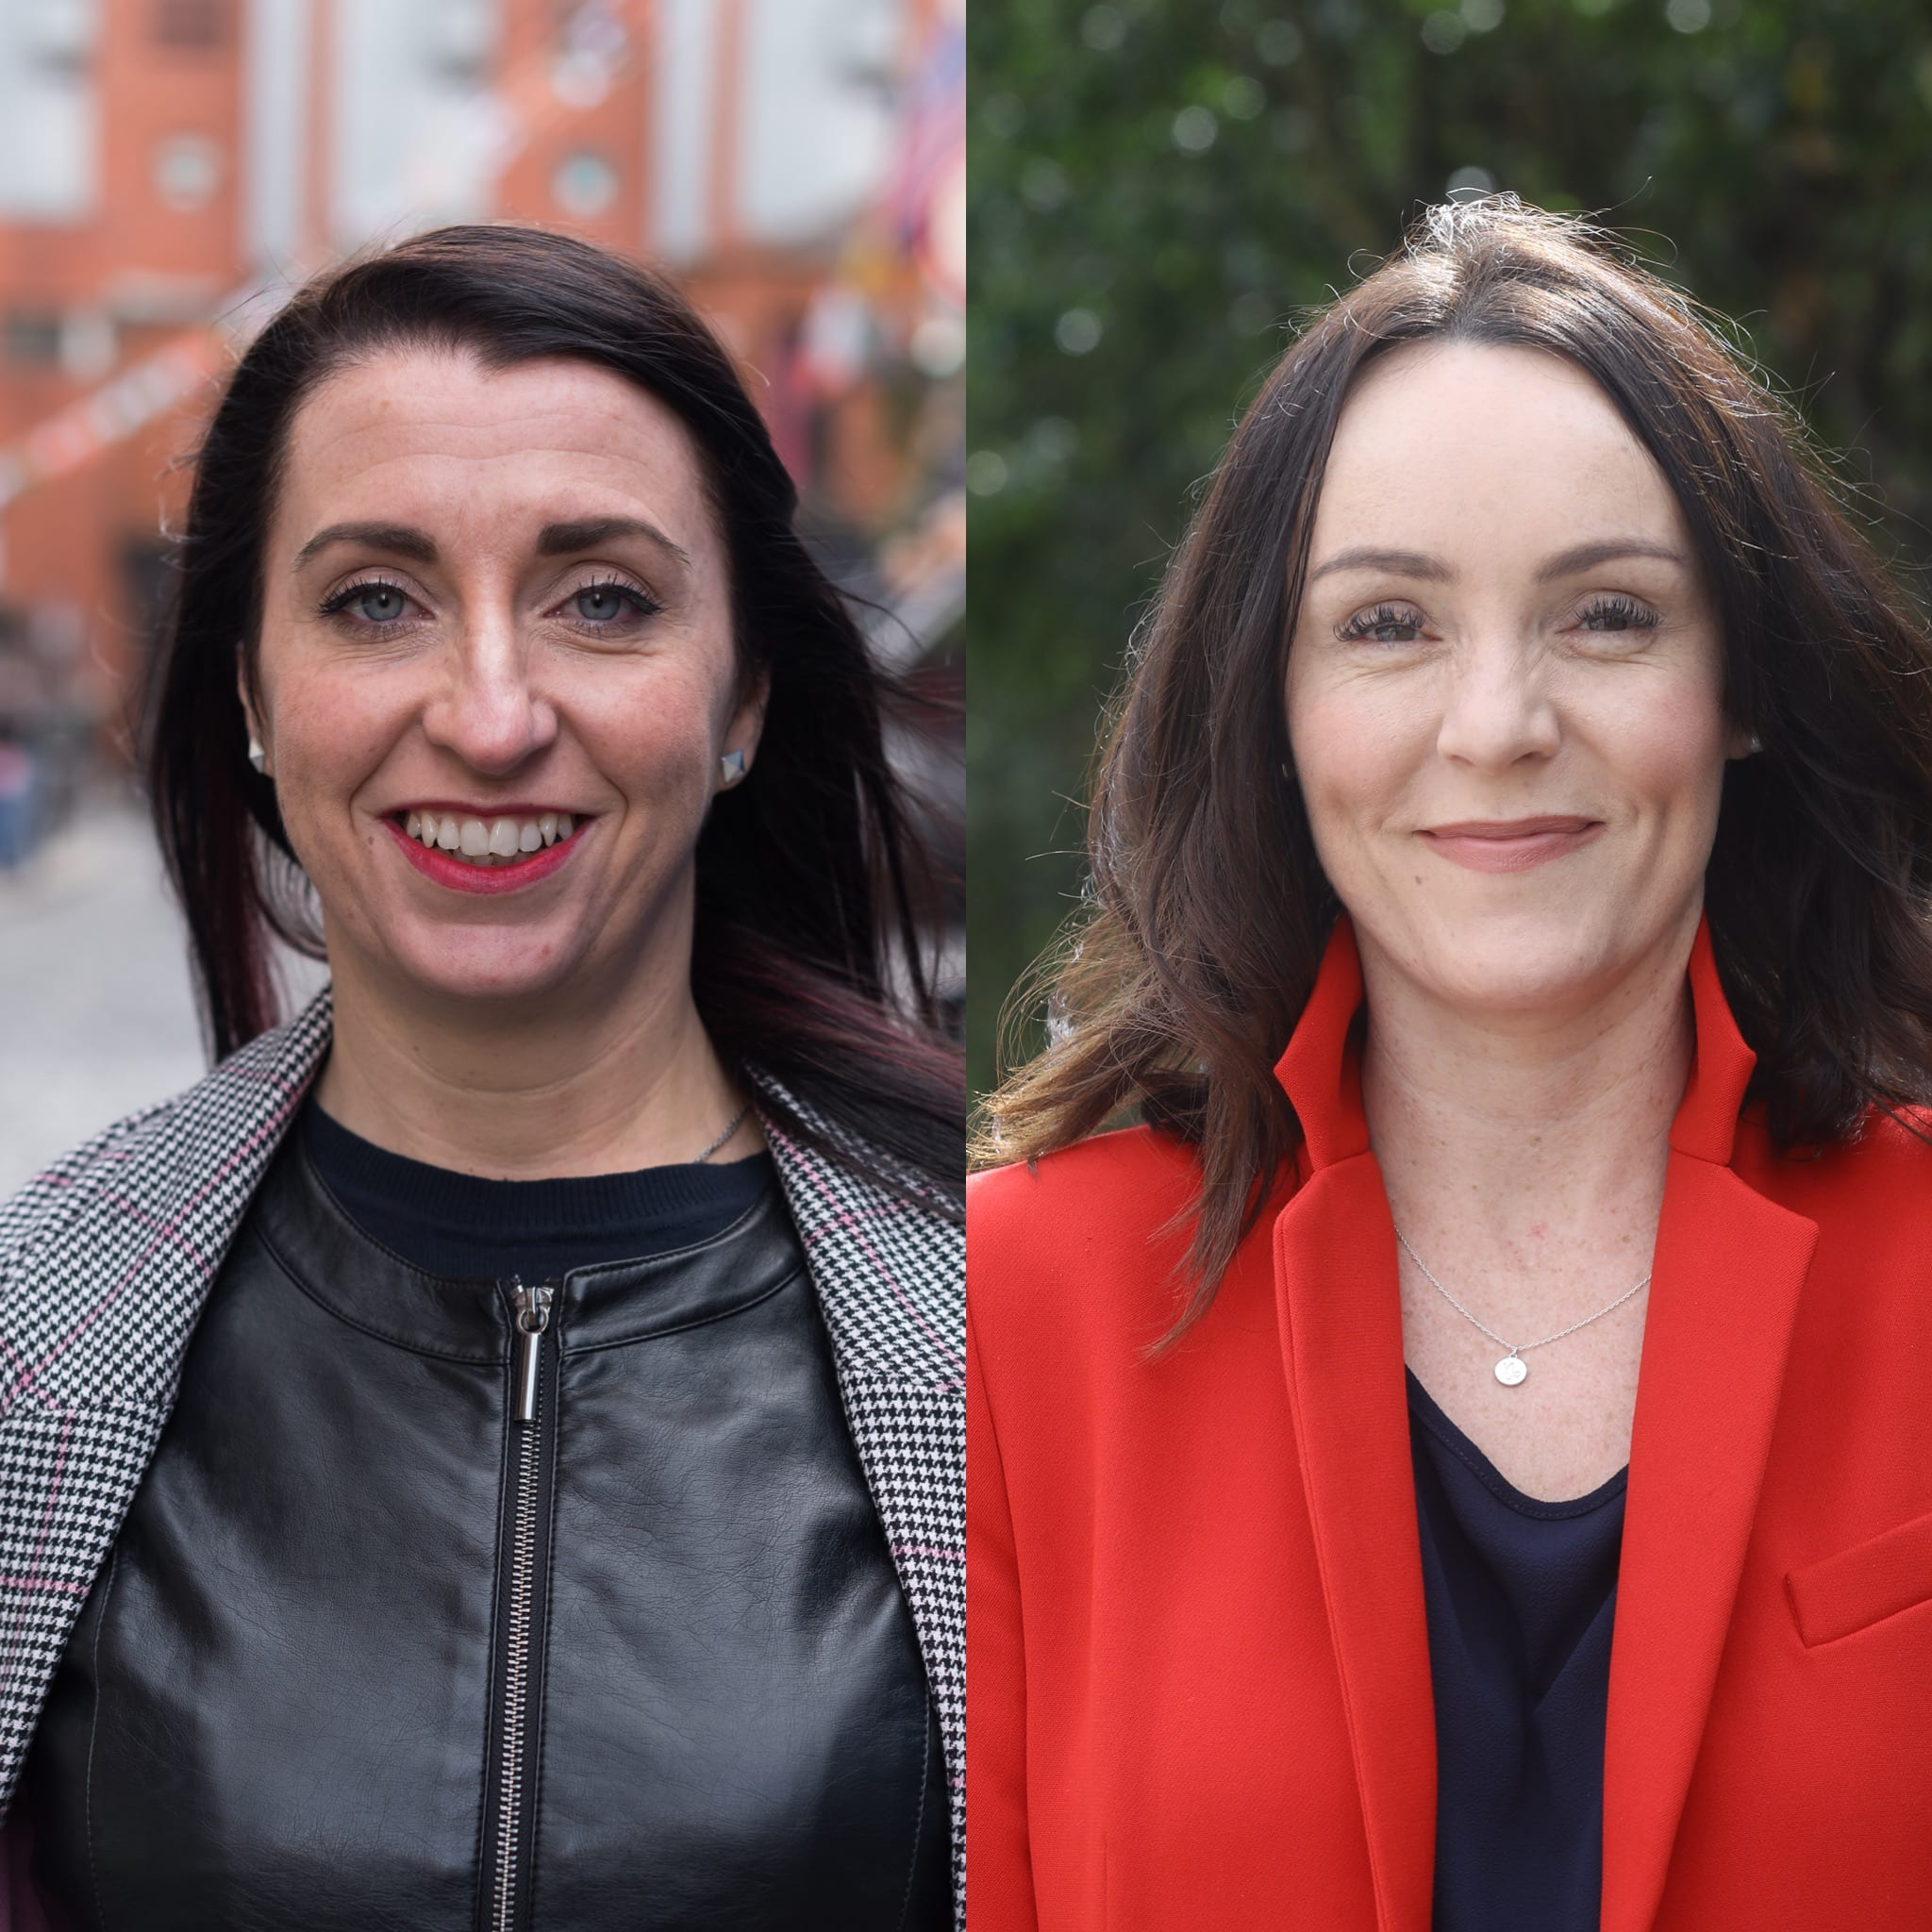 Anne-Marie McNally & Tara Deacy join a great summer school line up - 21st July 2018